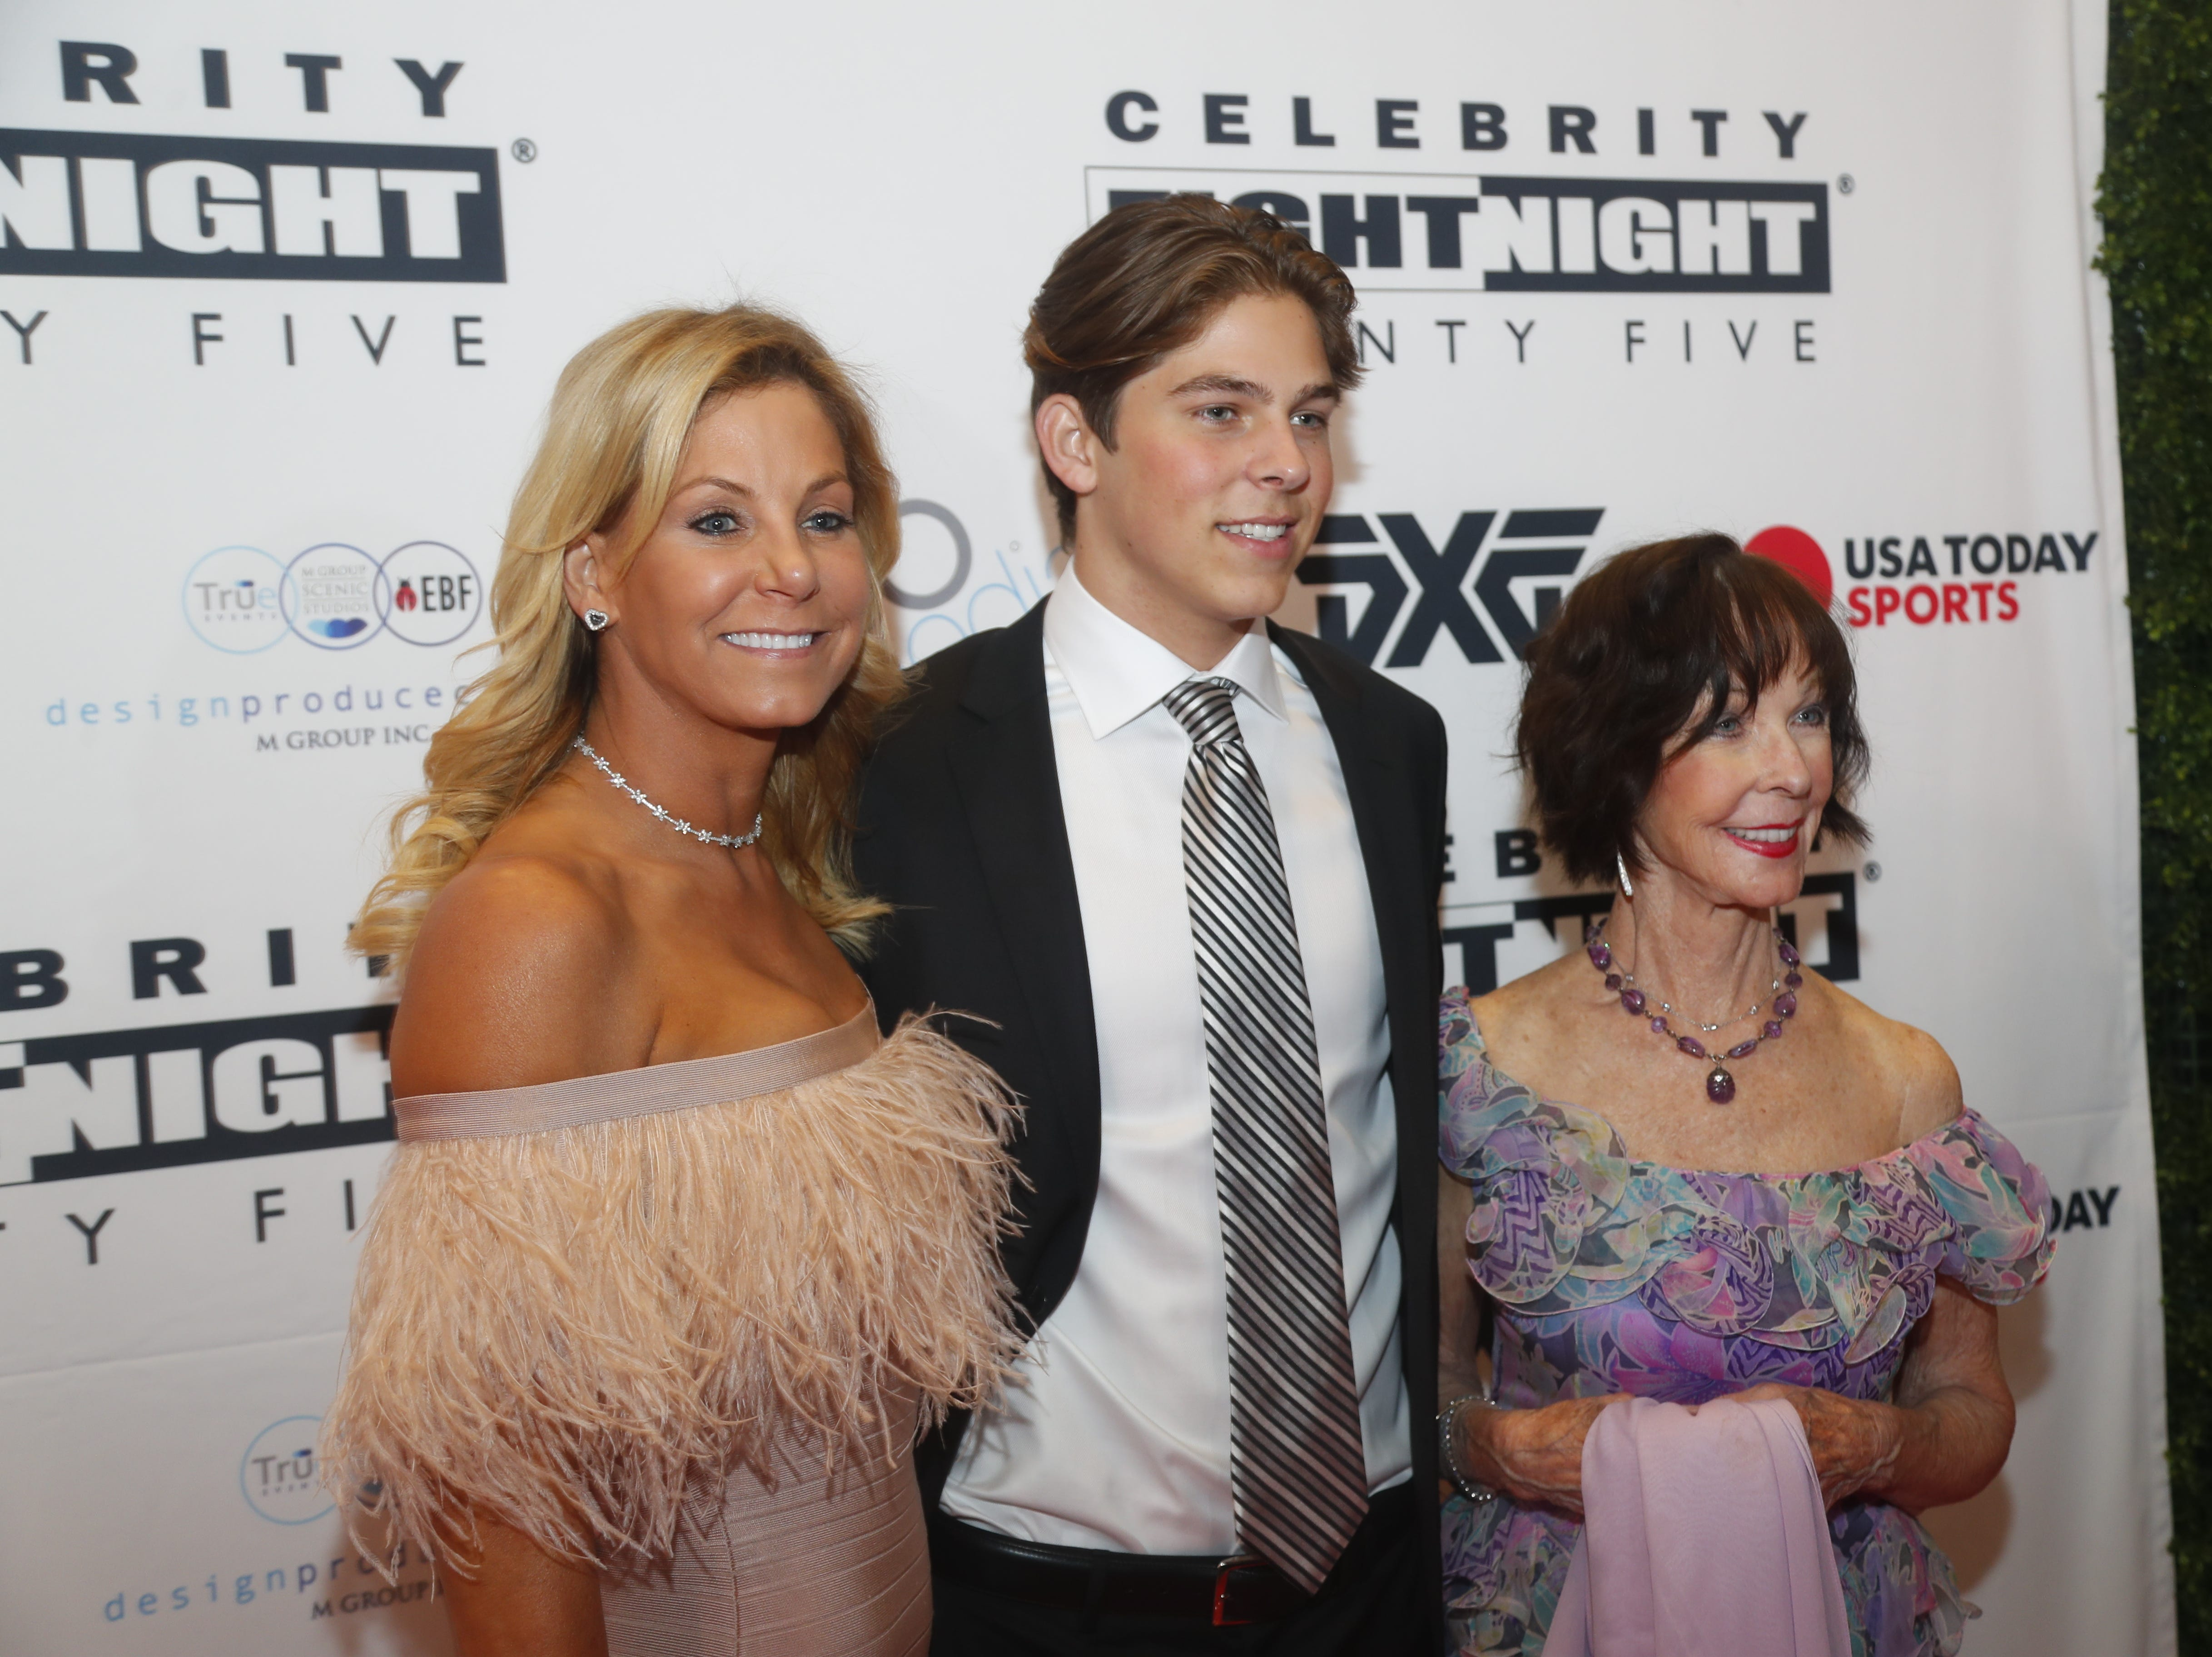 Gunner Gehl poses for pictures during the Celebrity Fight Night red carpet in Scottsdale, Ariz., on March 23, 2019.